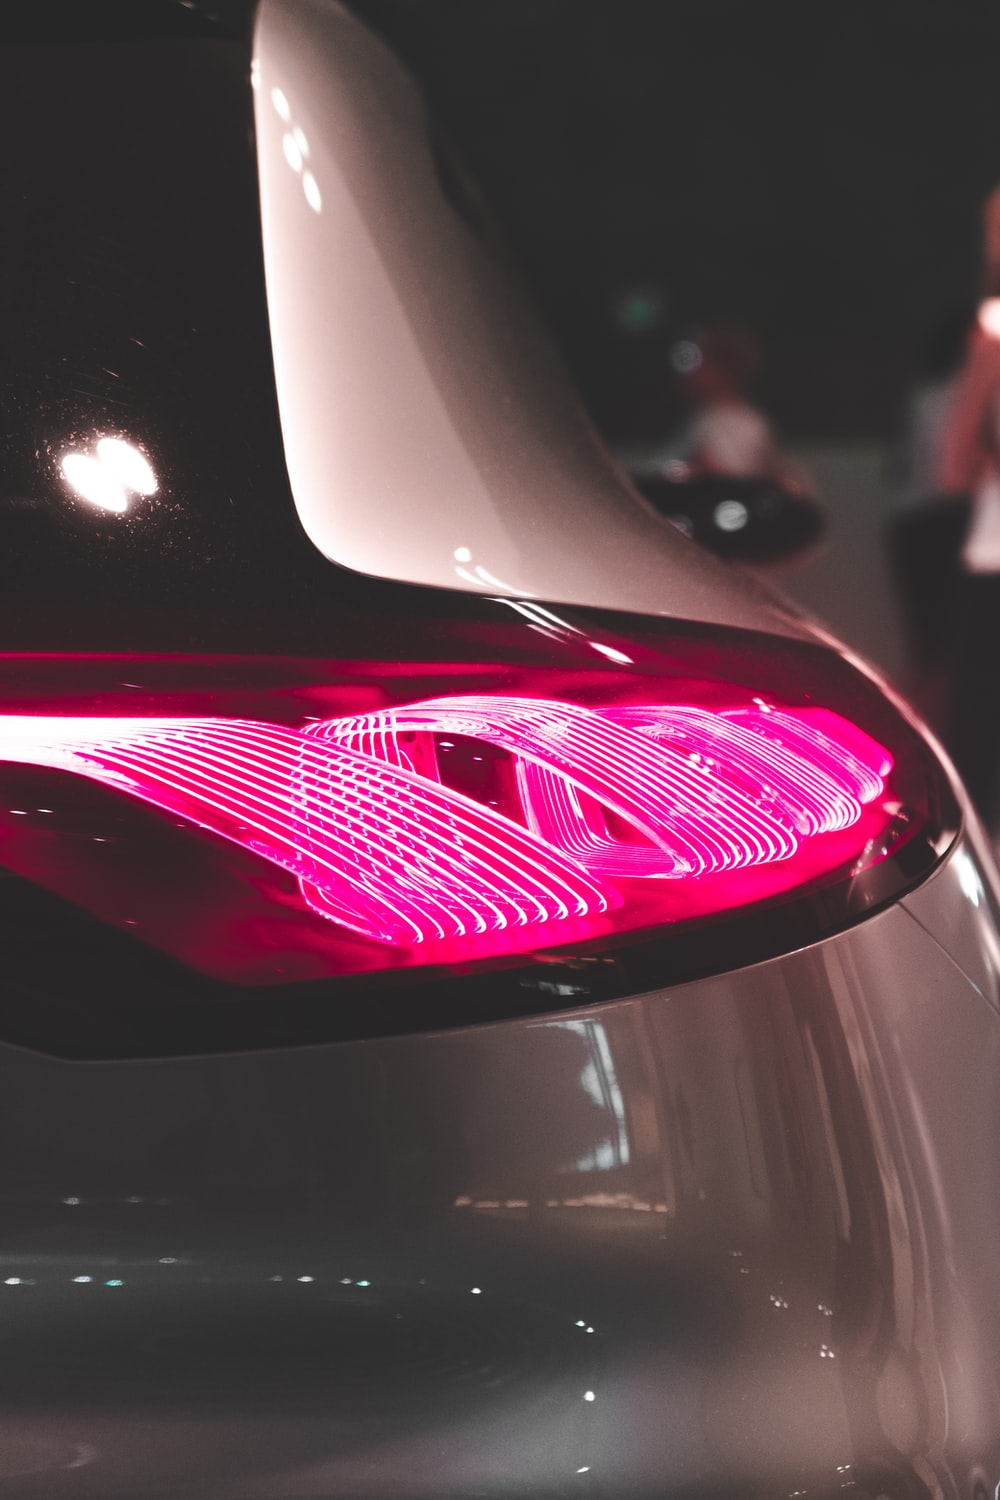 macro photography of vehicle taillight